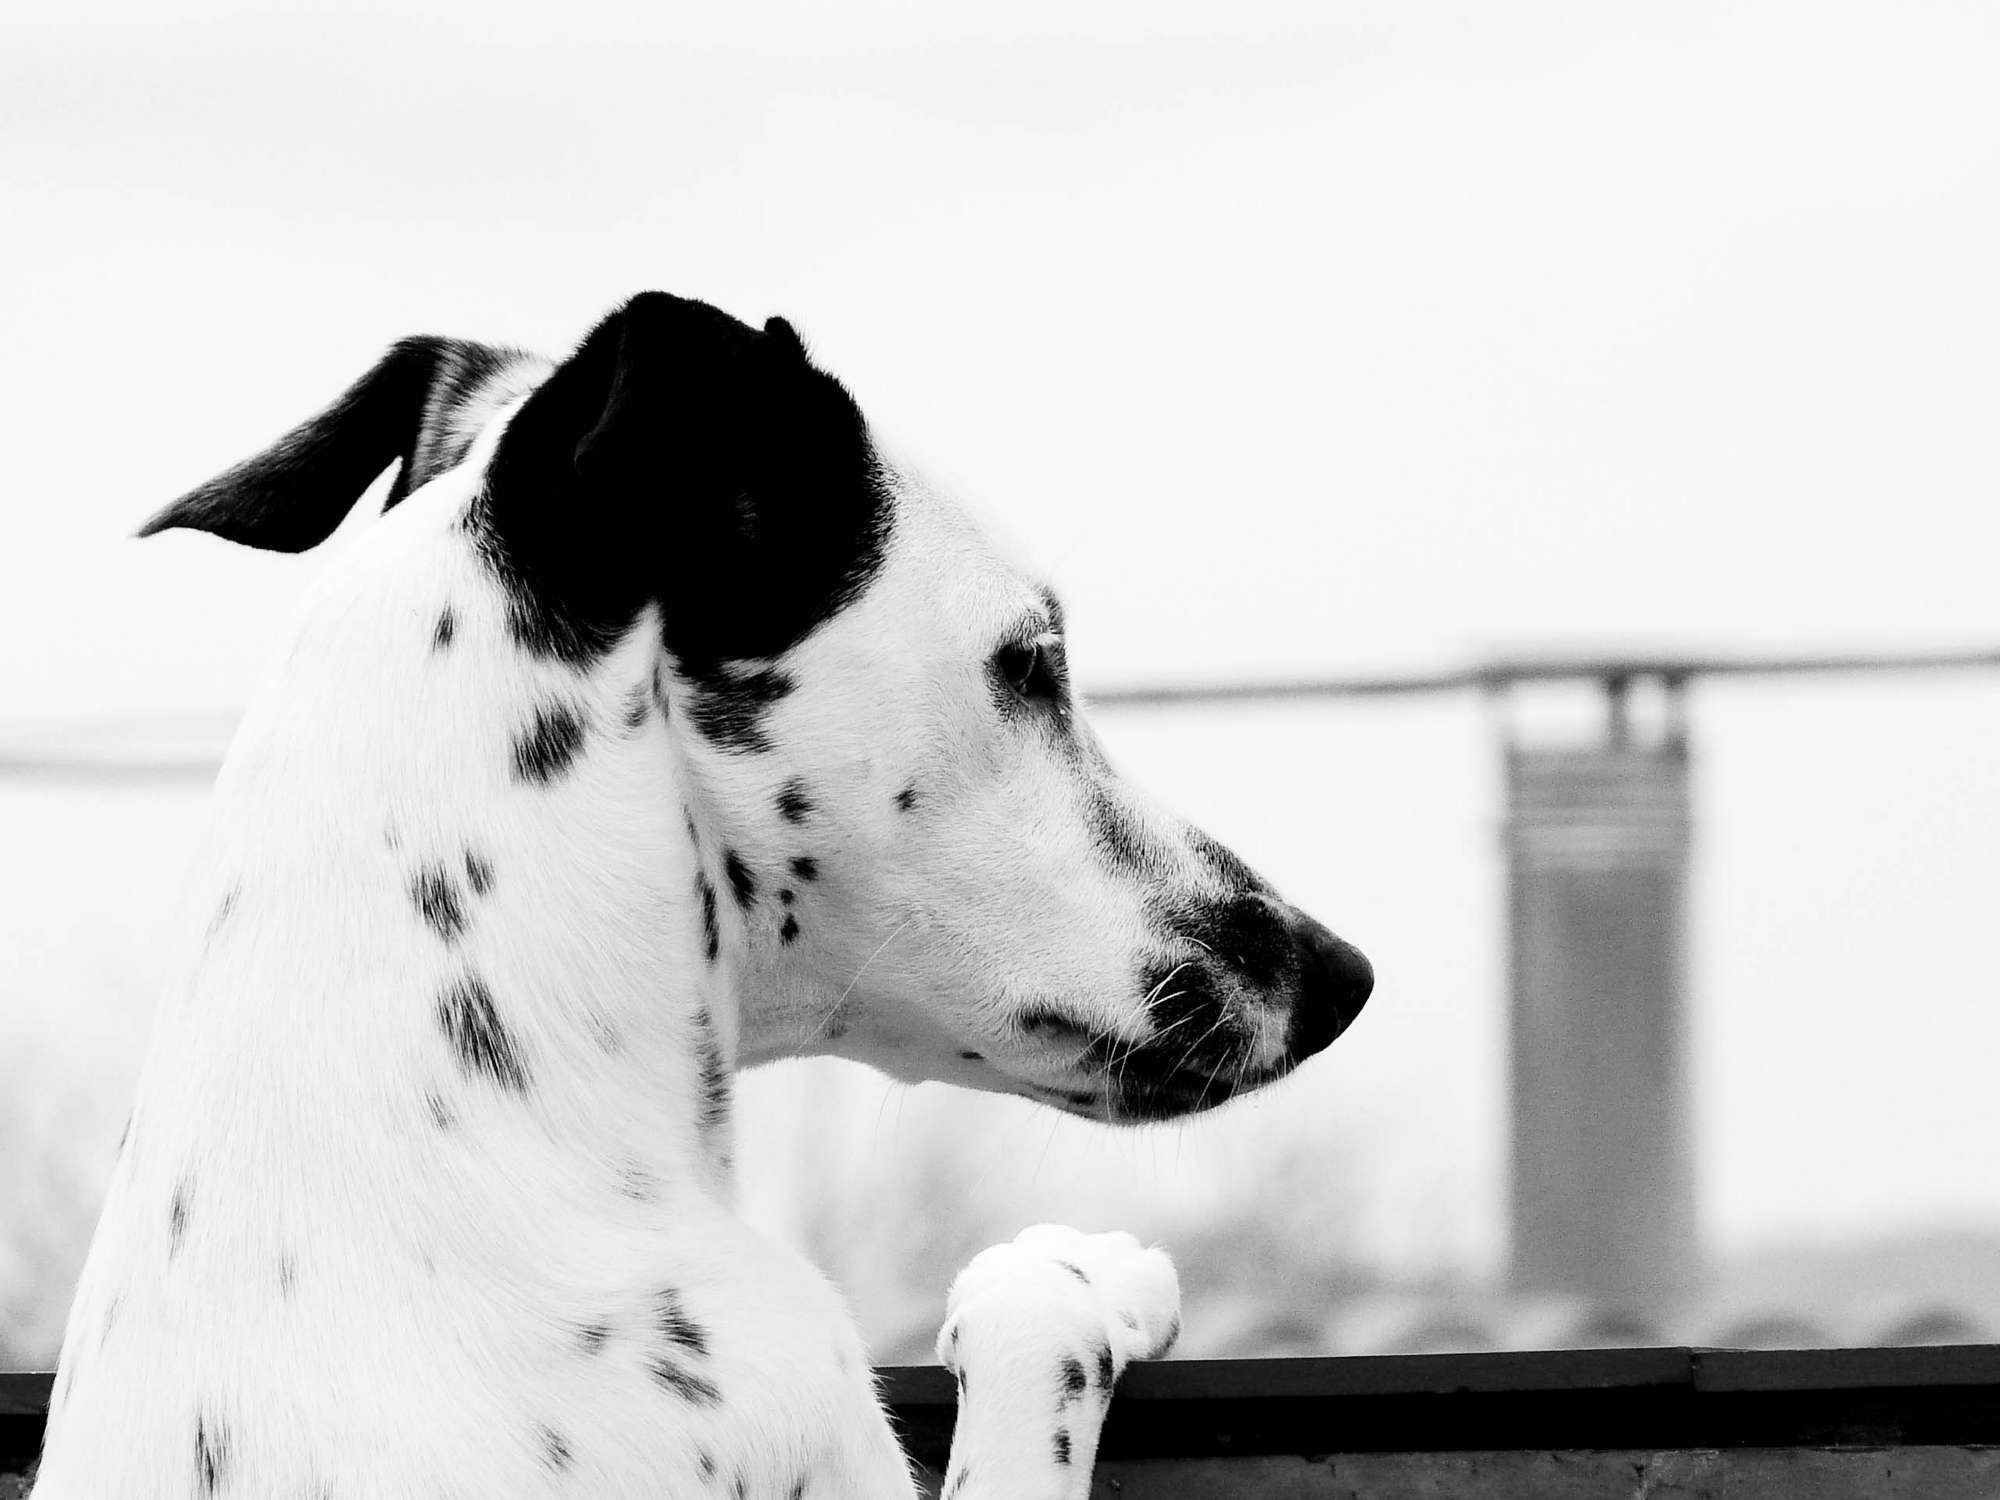 Dalmatian, black and white, view, wallpapers , Pc backgrounds, free photos